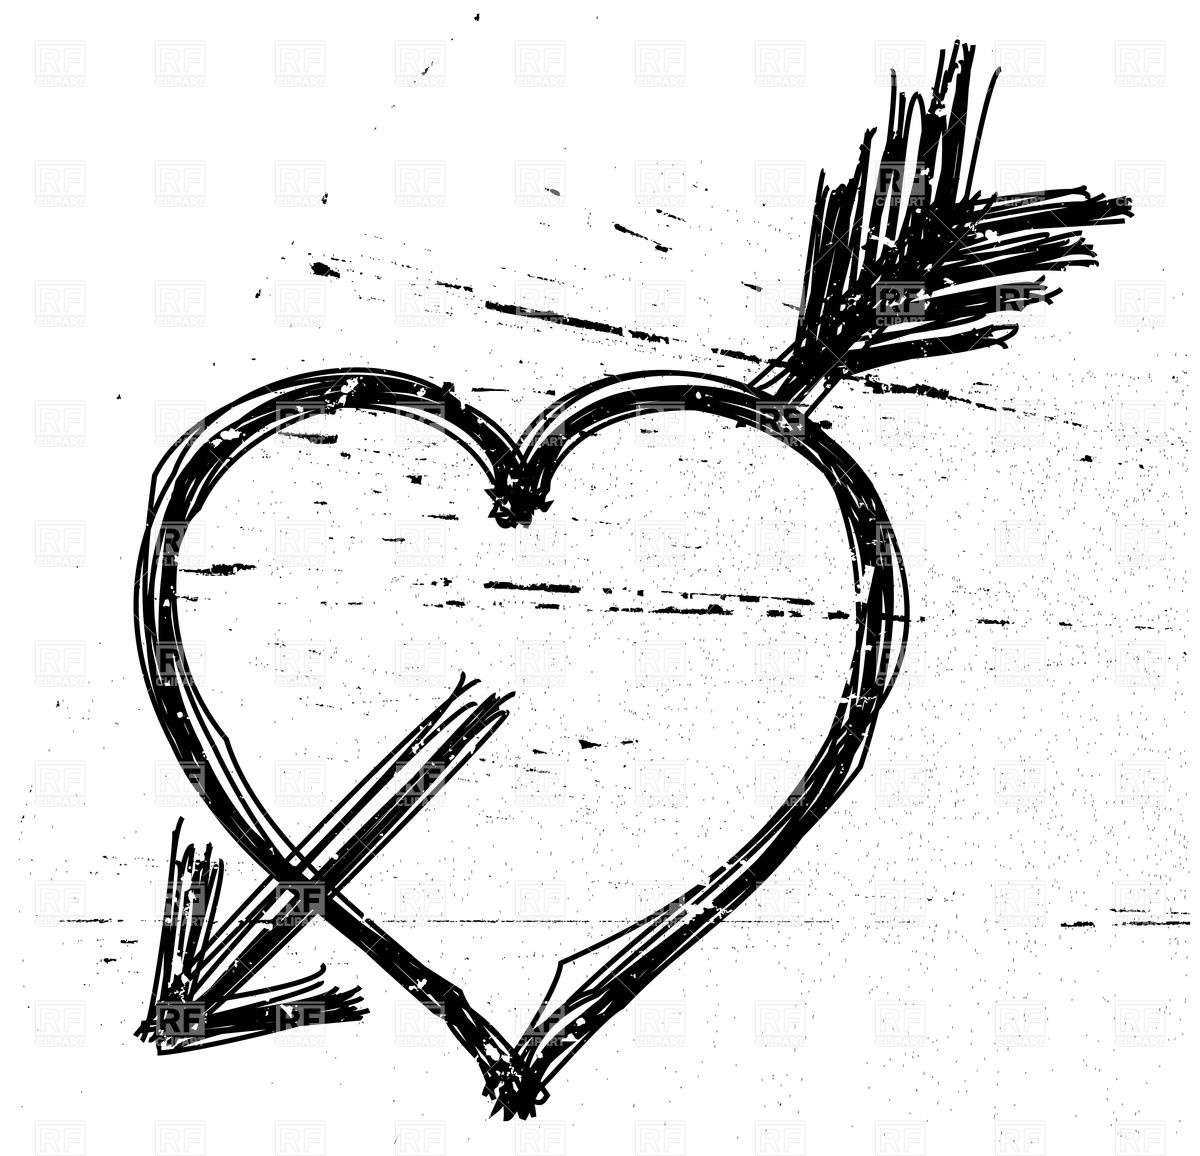 heart with arrow drawing at free for. Black Bedroom Furniture Sets. Home Design Ideas